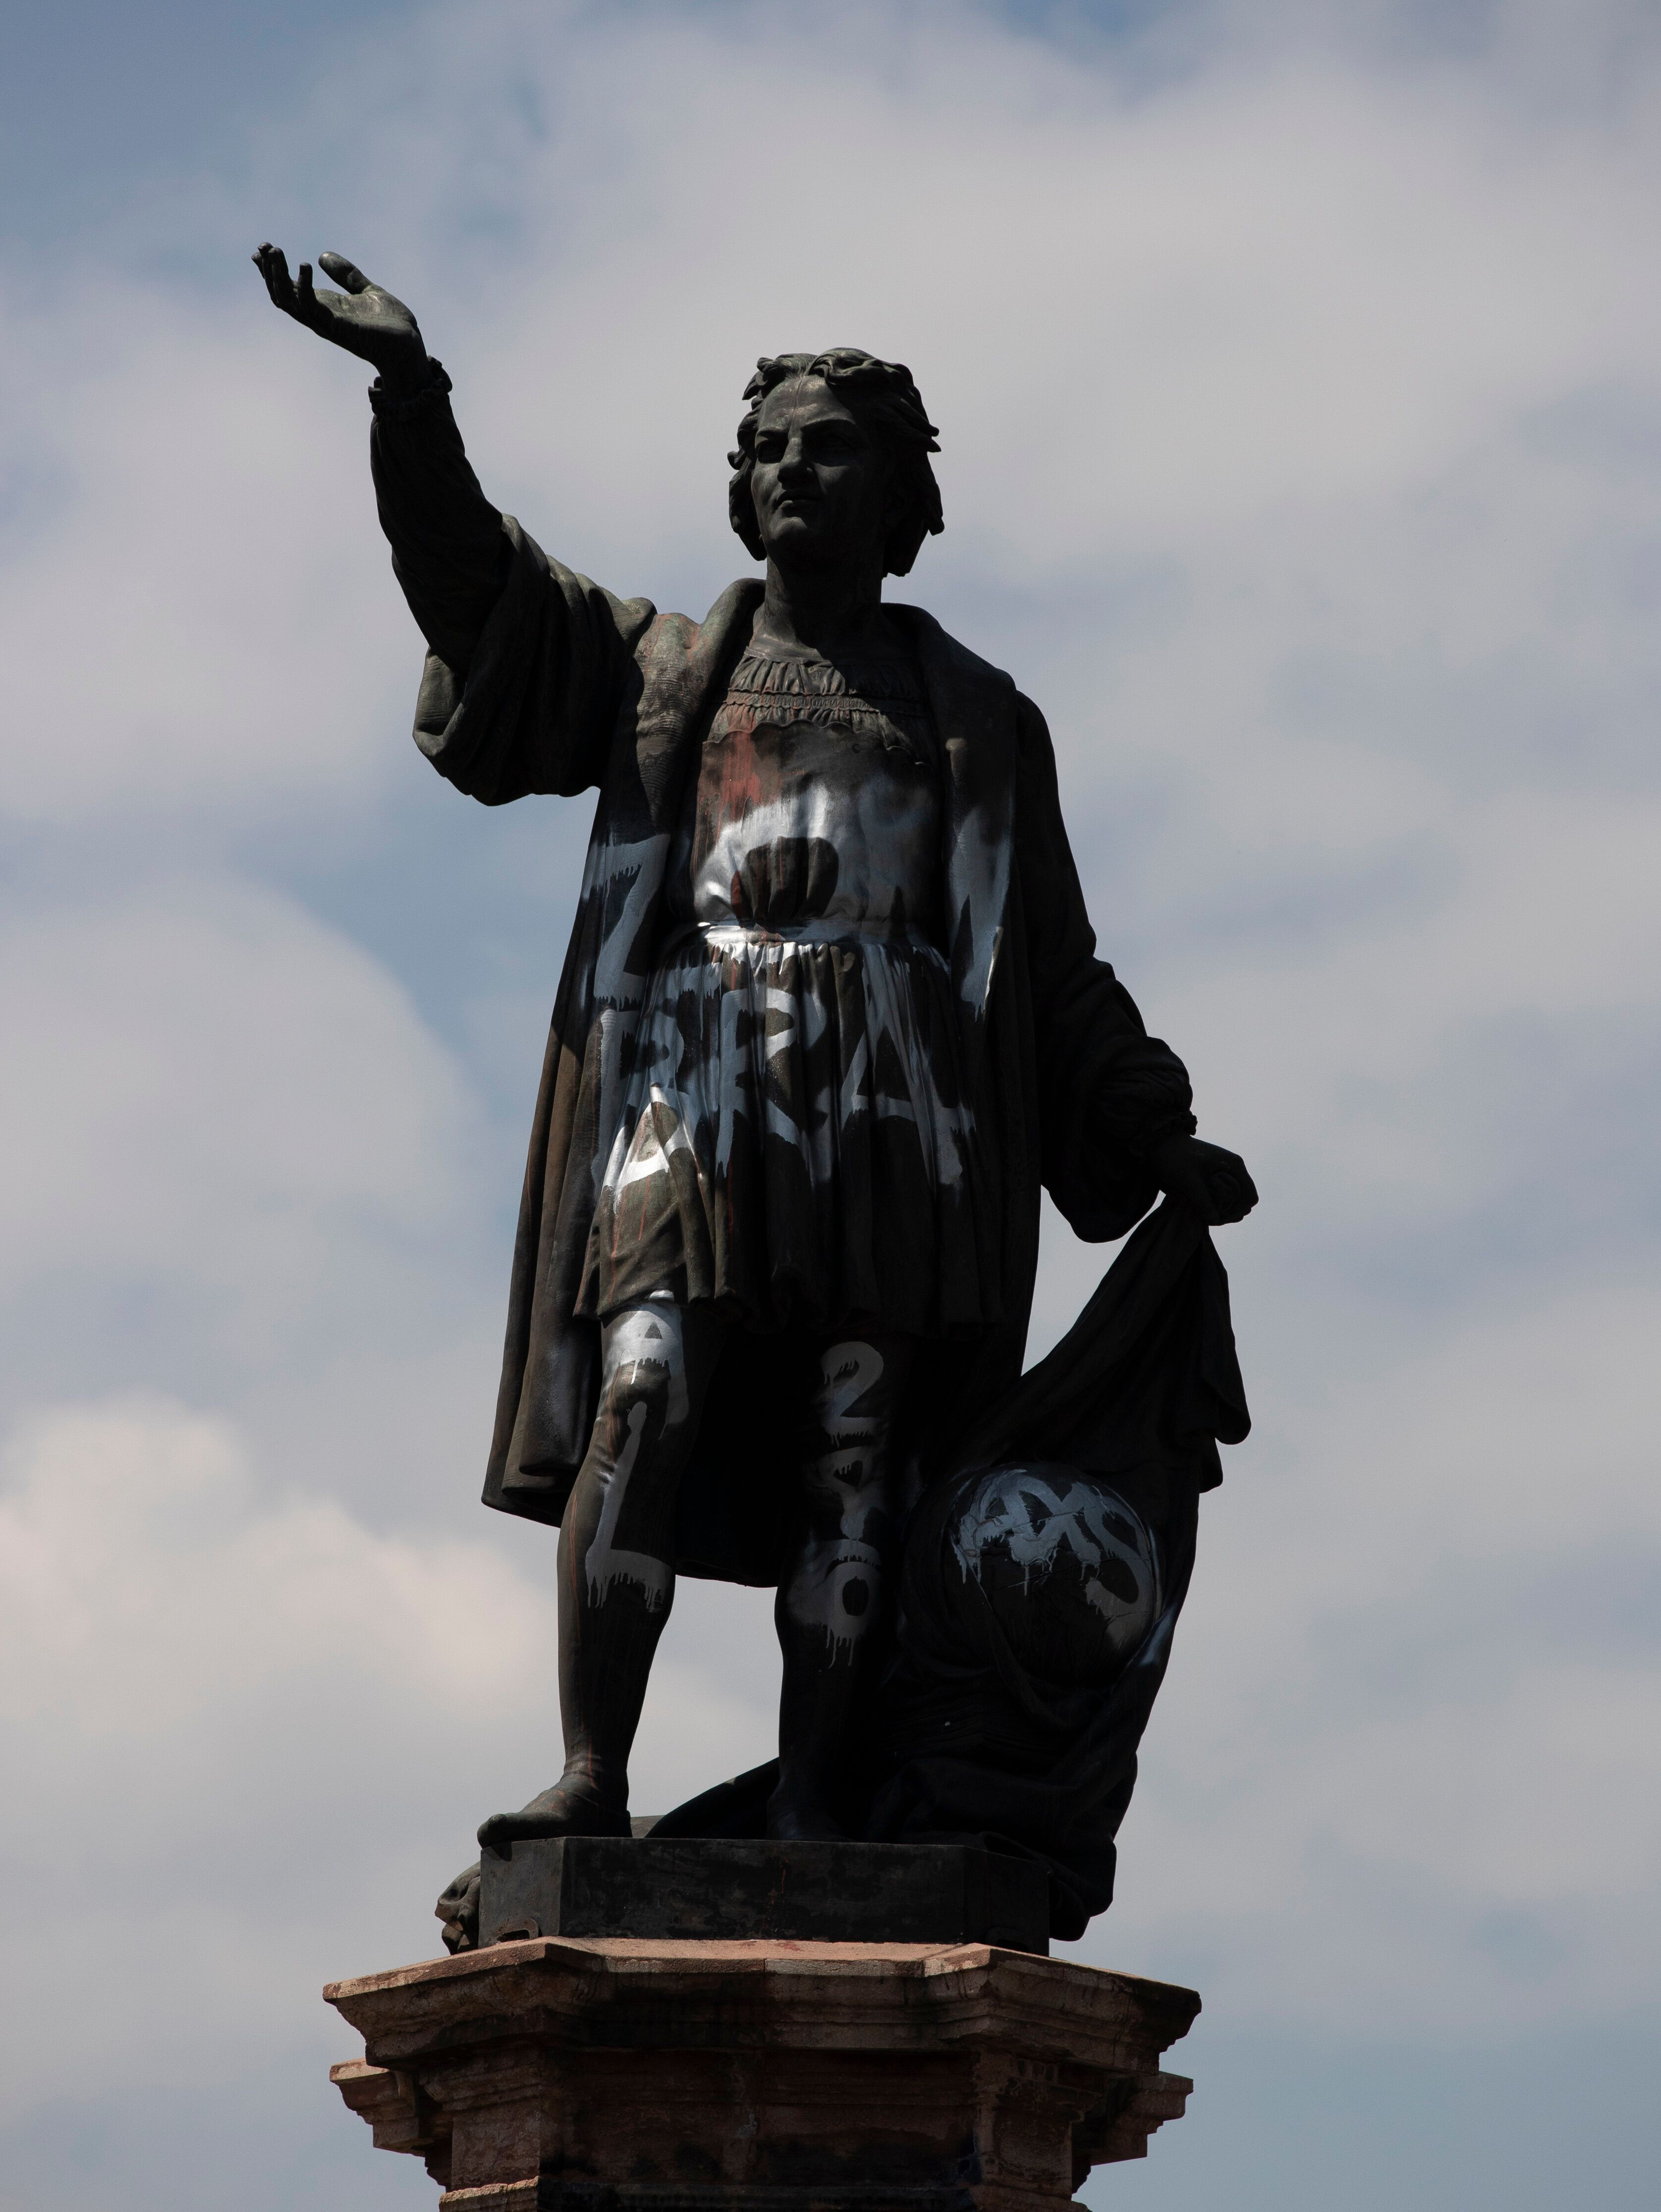 The Columbus statue isn't being discarded, but will be moved to a less prominent location in a small park in the Polanc